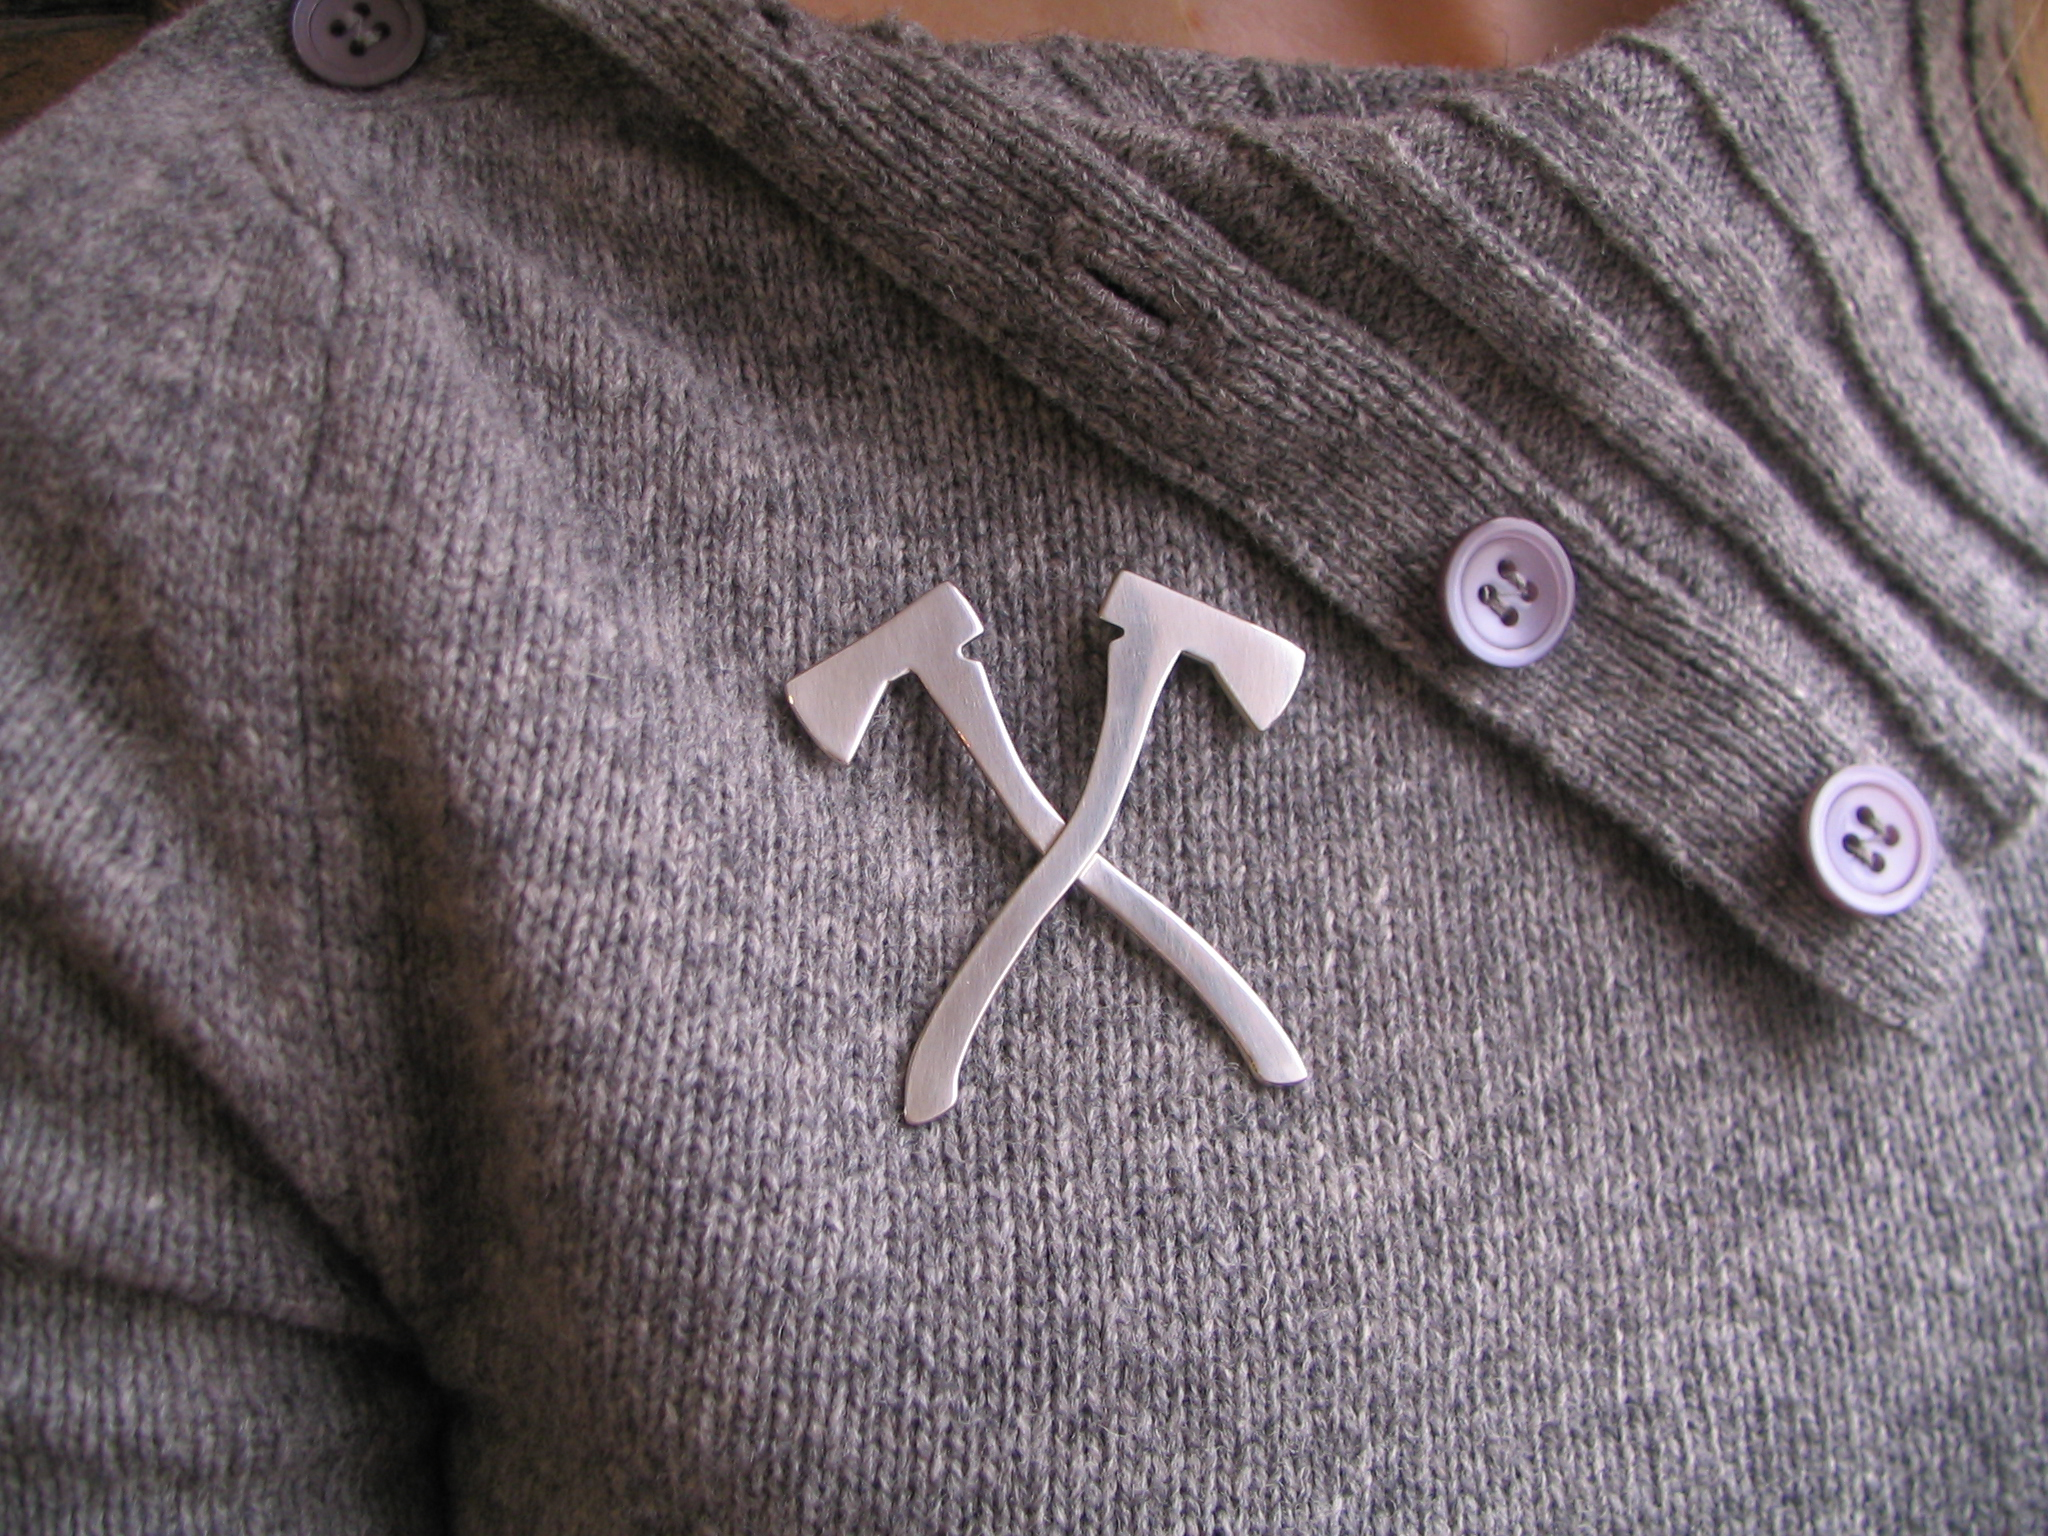 Axe Brooch